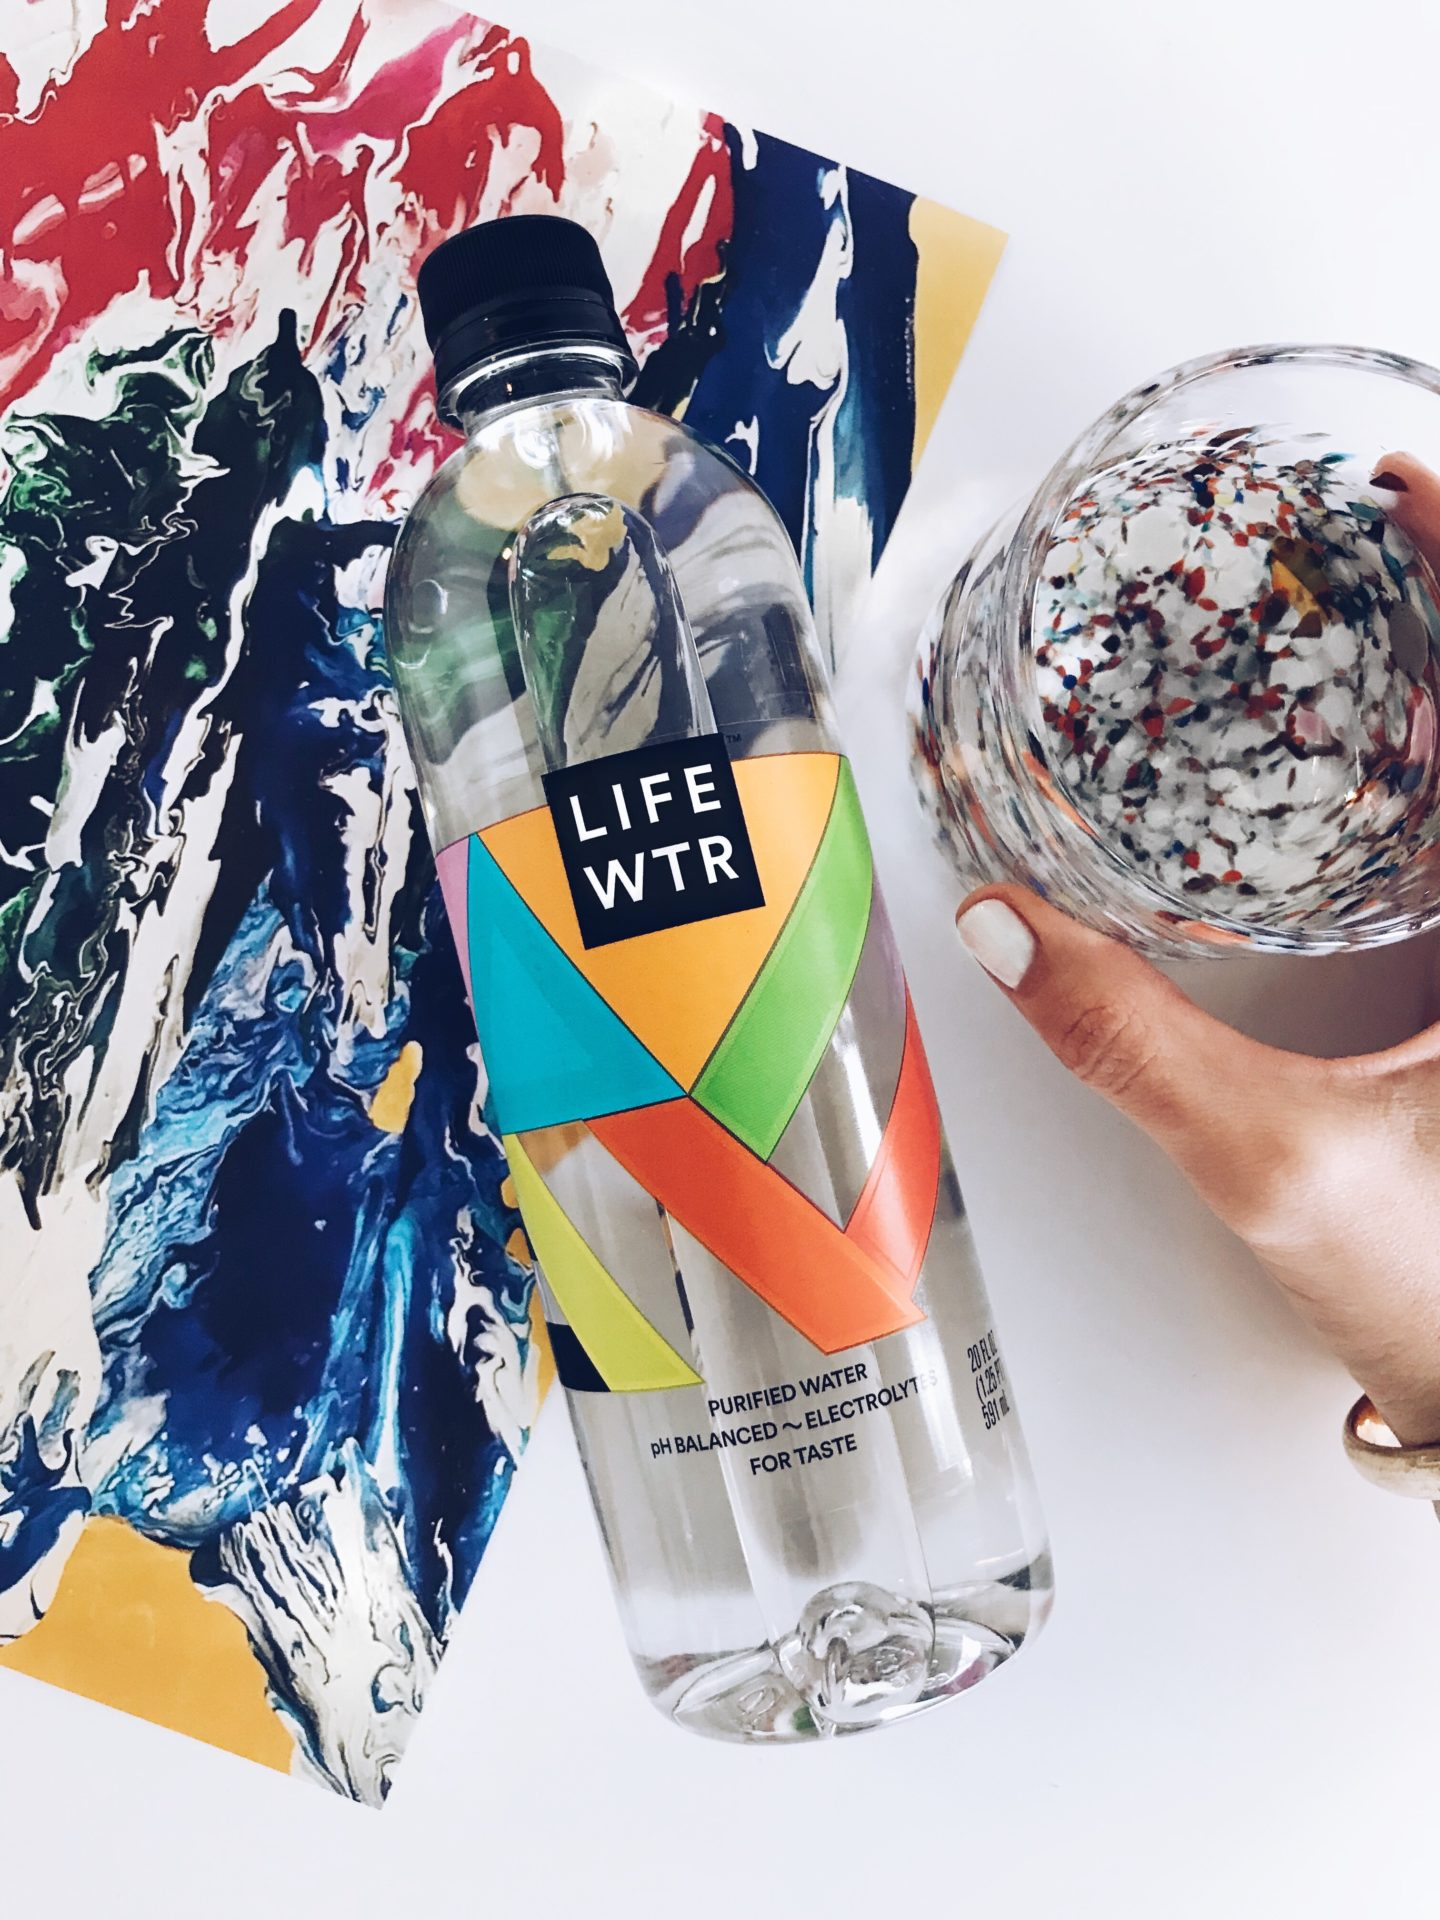 LIFEWTR with painting and glass